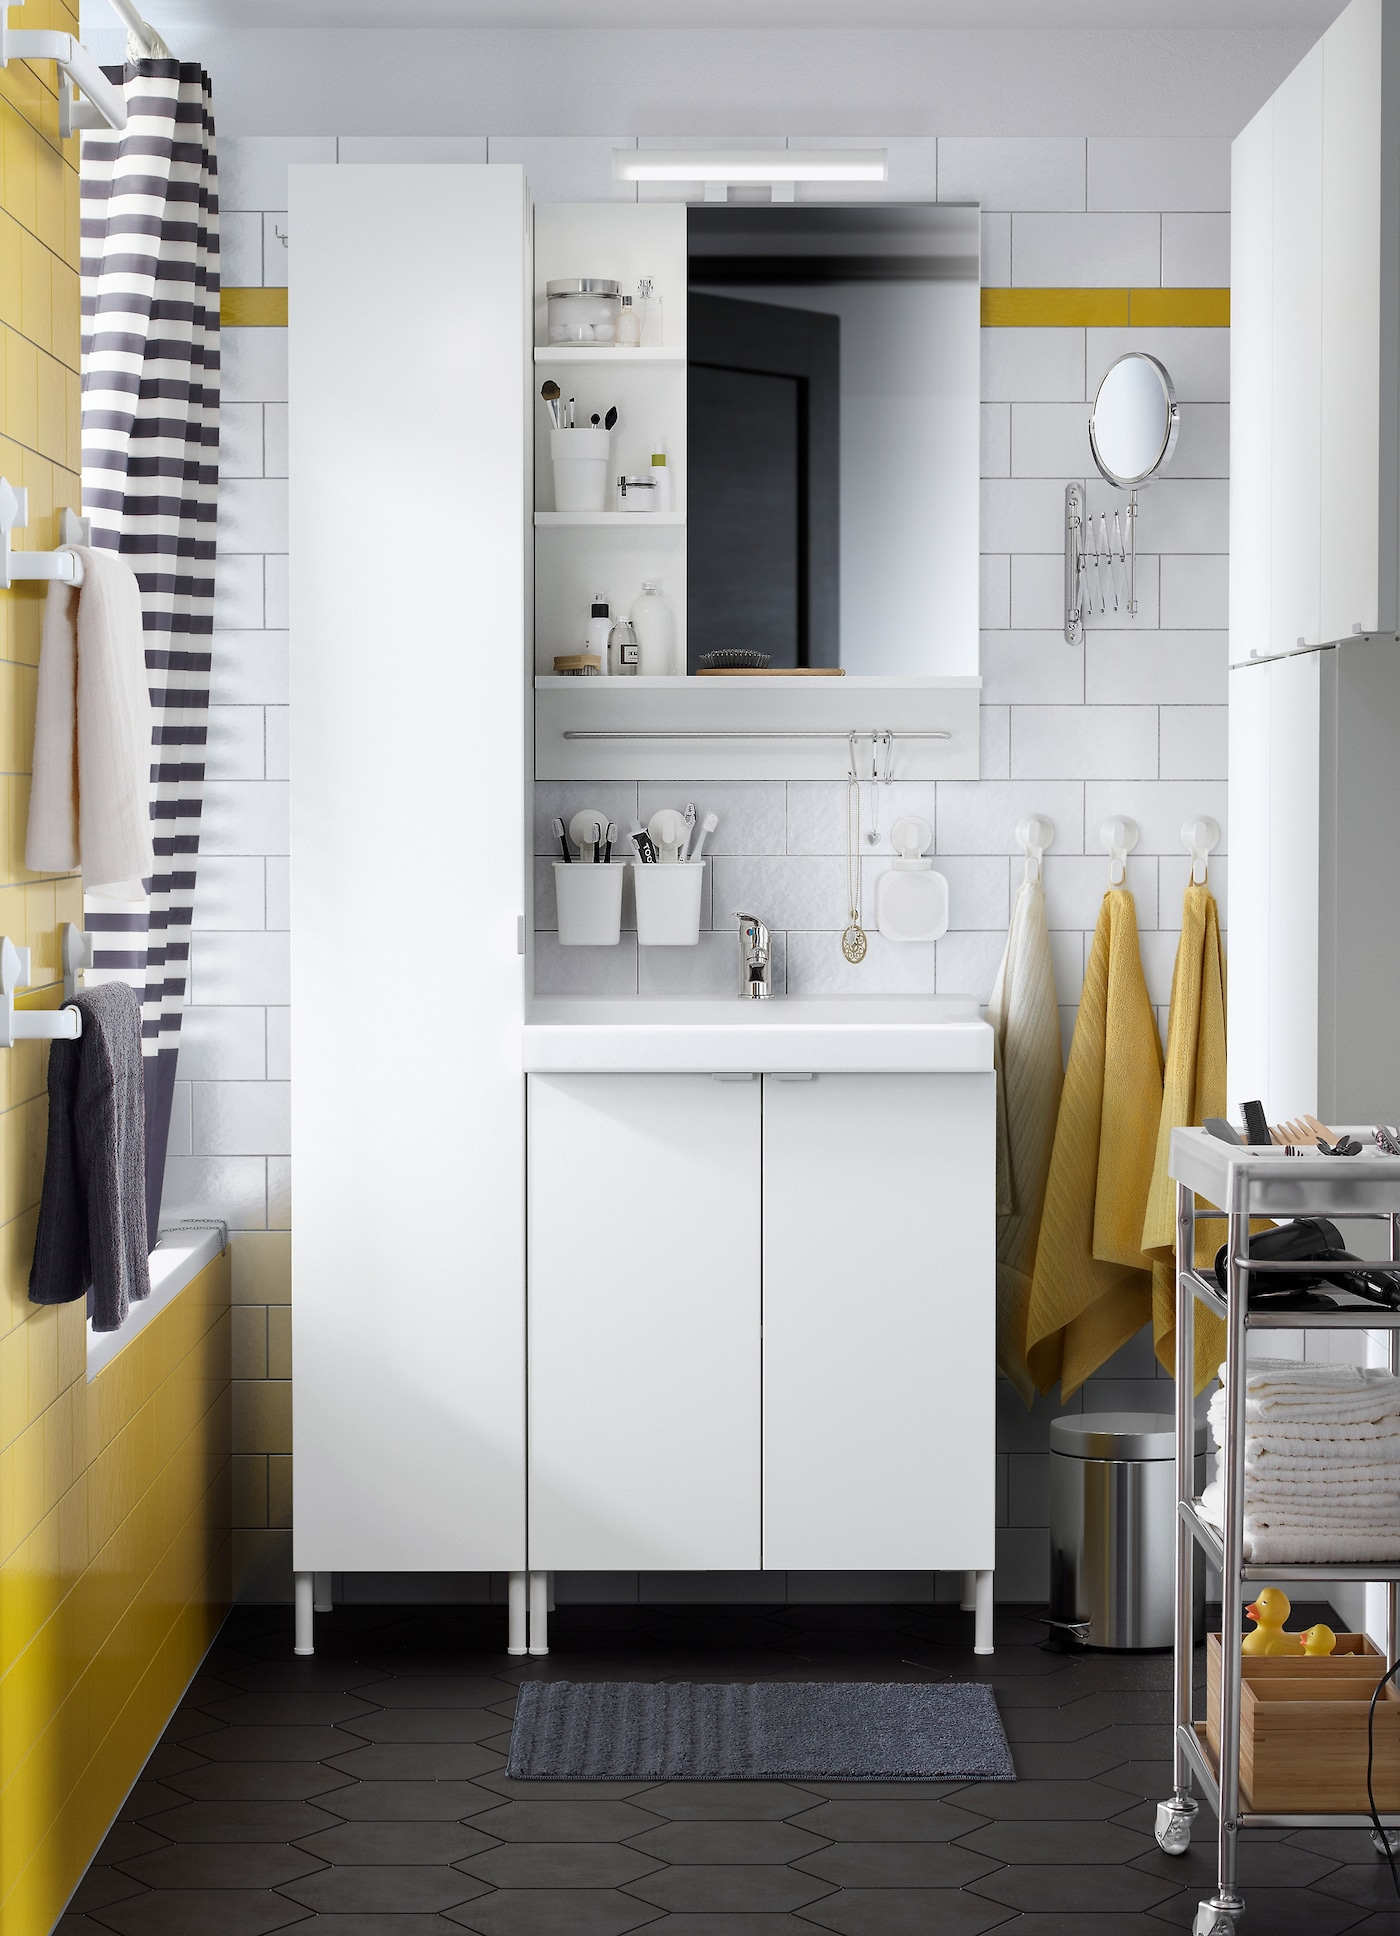 A black, white and yellow bathroom with LILLÅNGEN/TALLEVIK washbasin cabinet in white with 2 doors and a LILLÅNGEN wall cabinet and LILLÅNGEN high cabinet in white providing plenty of storage space and an organised look and feel.